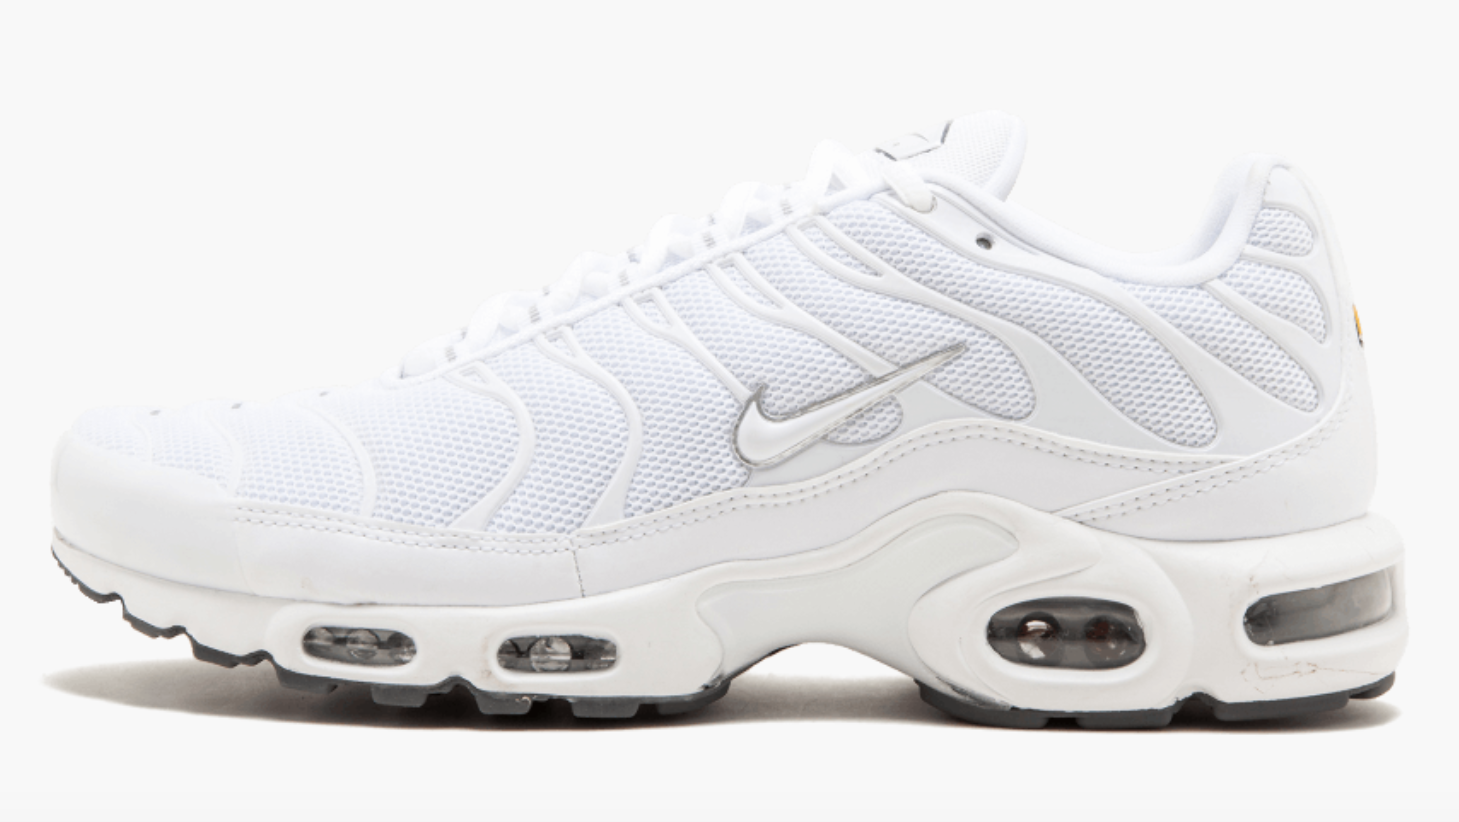 buy online 507be fd45a Best Nike Air Max Shoes 2019 | Air Max Releases and Deals